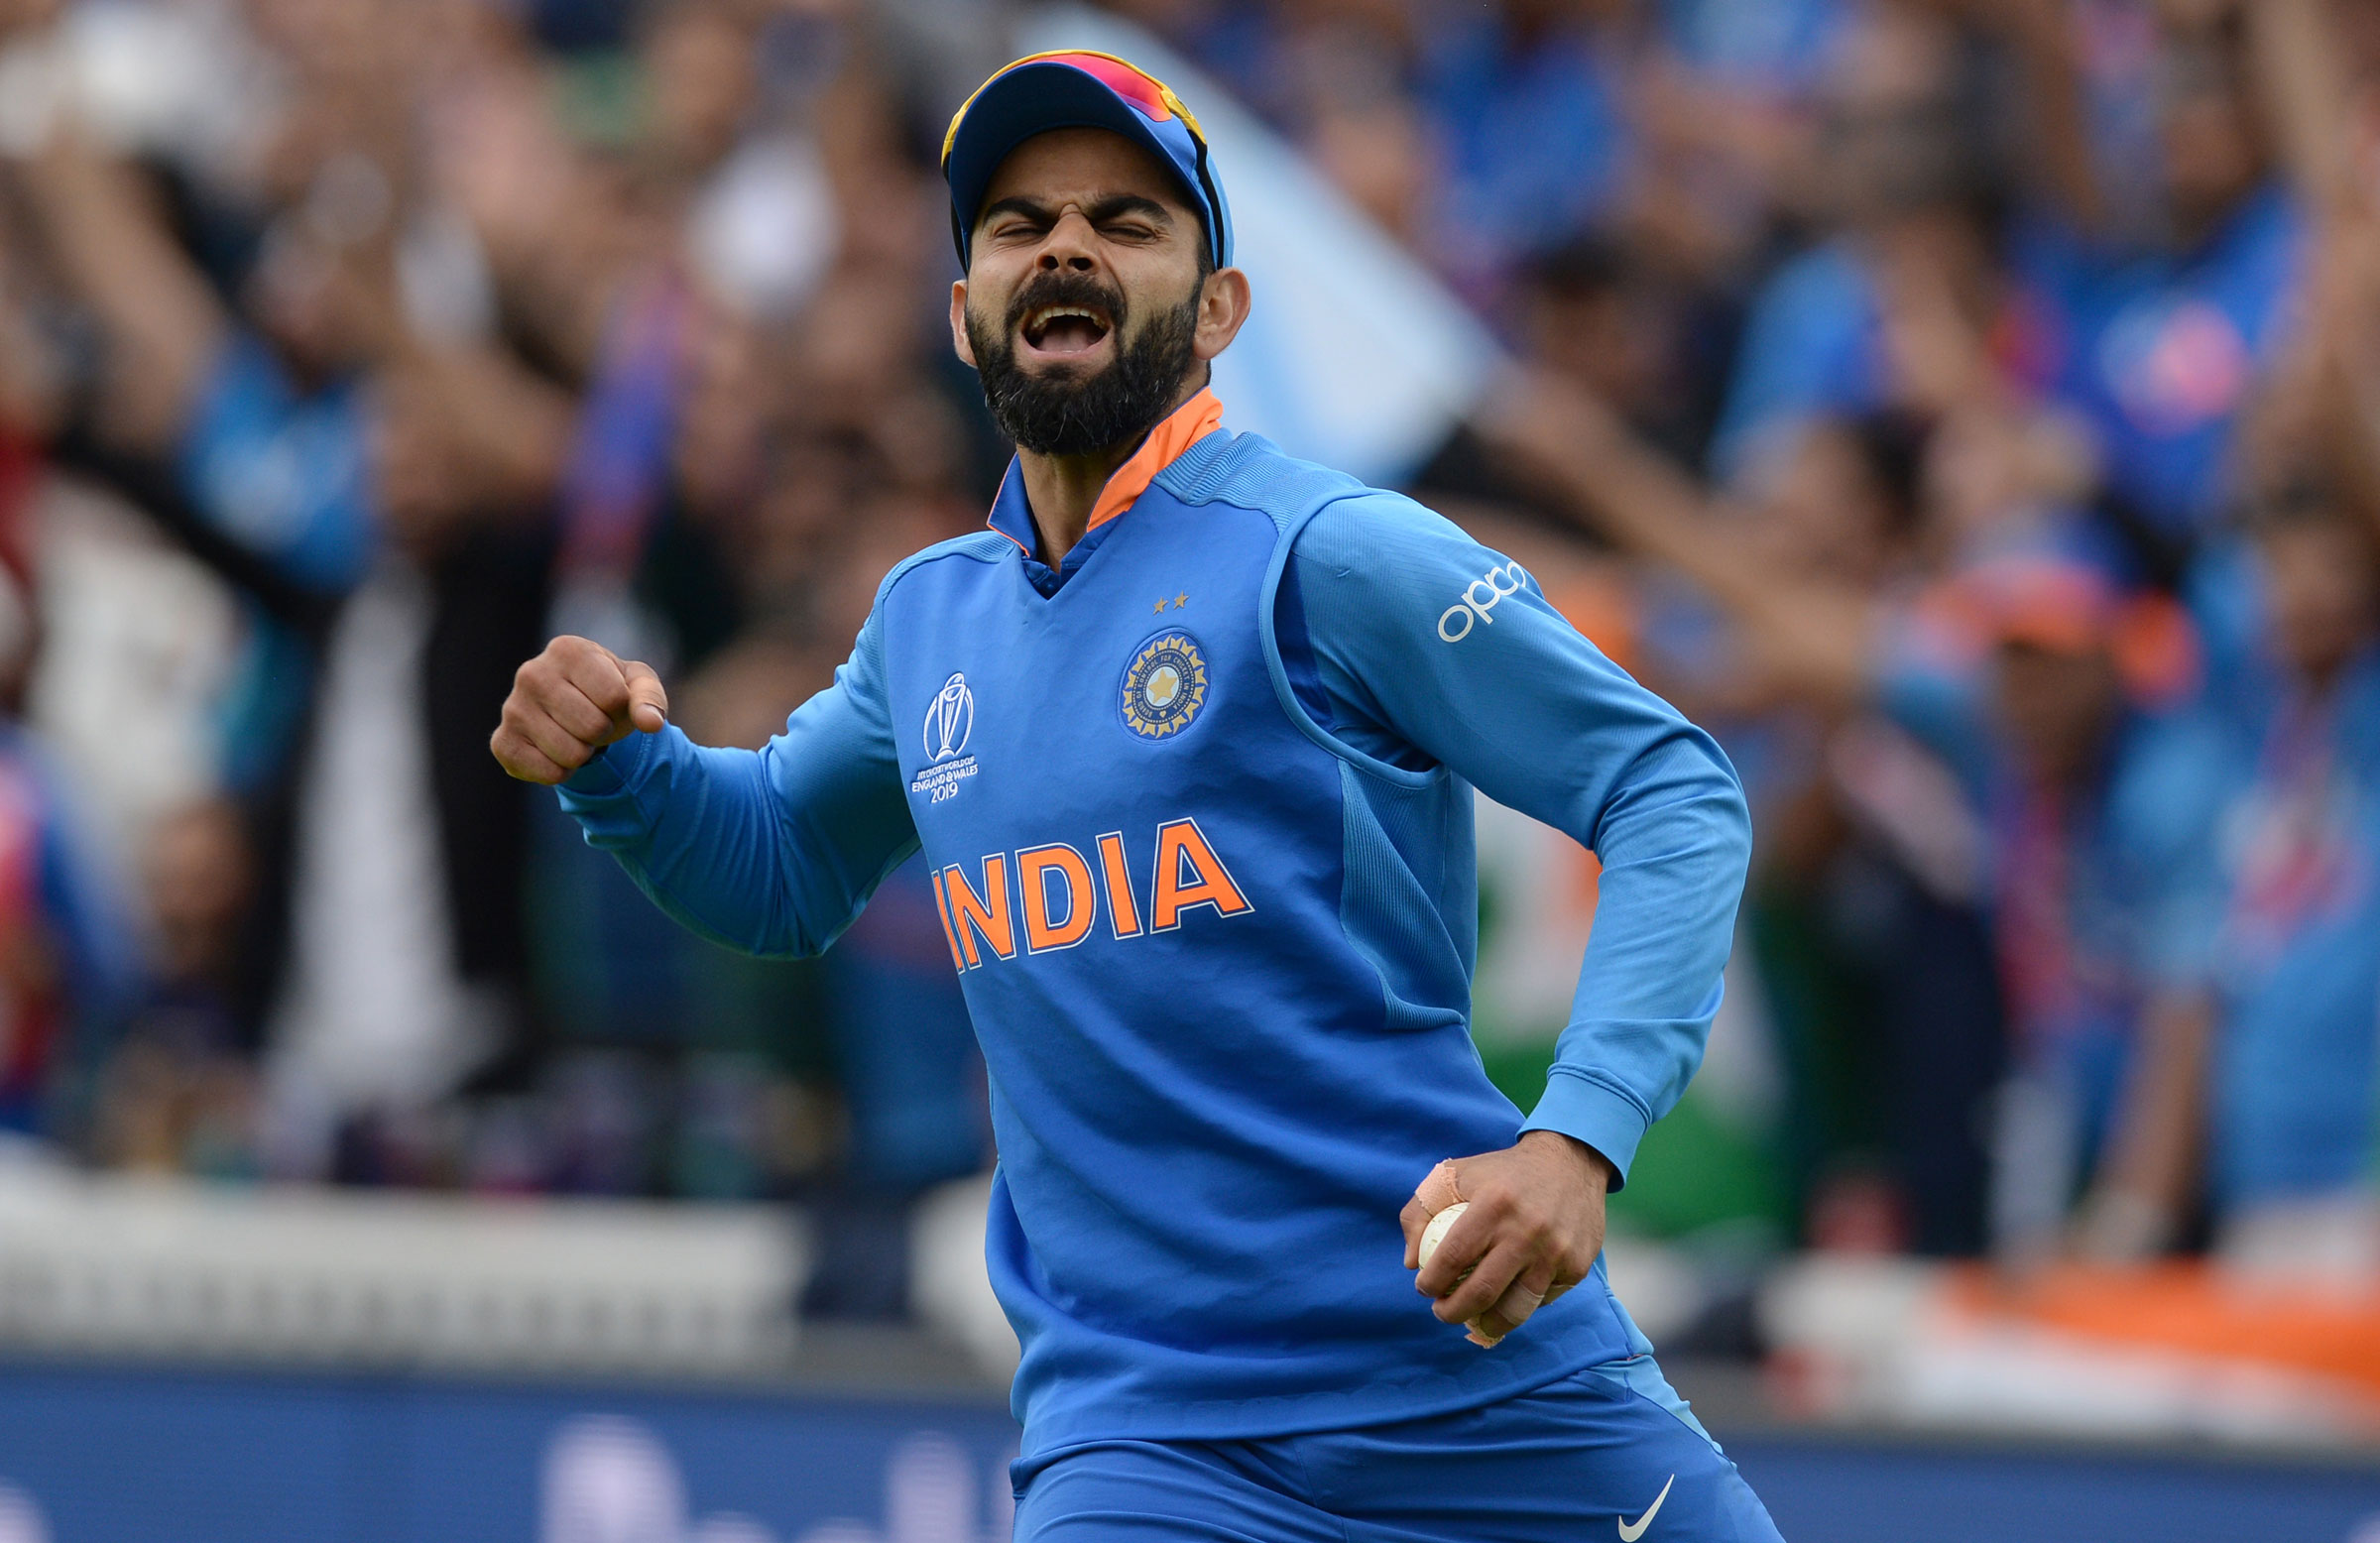 An ecstatic Virat Kohli // Getty